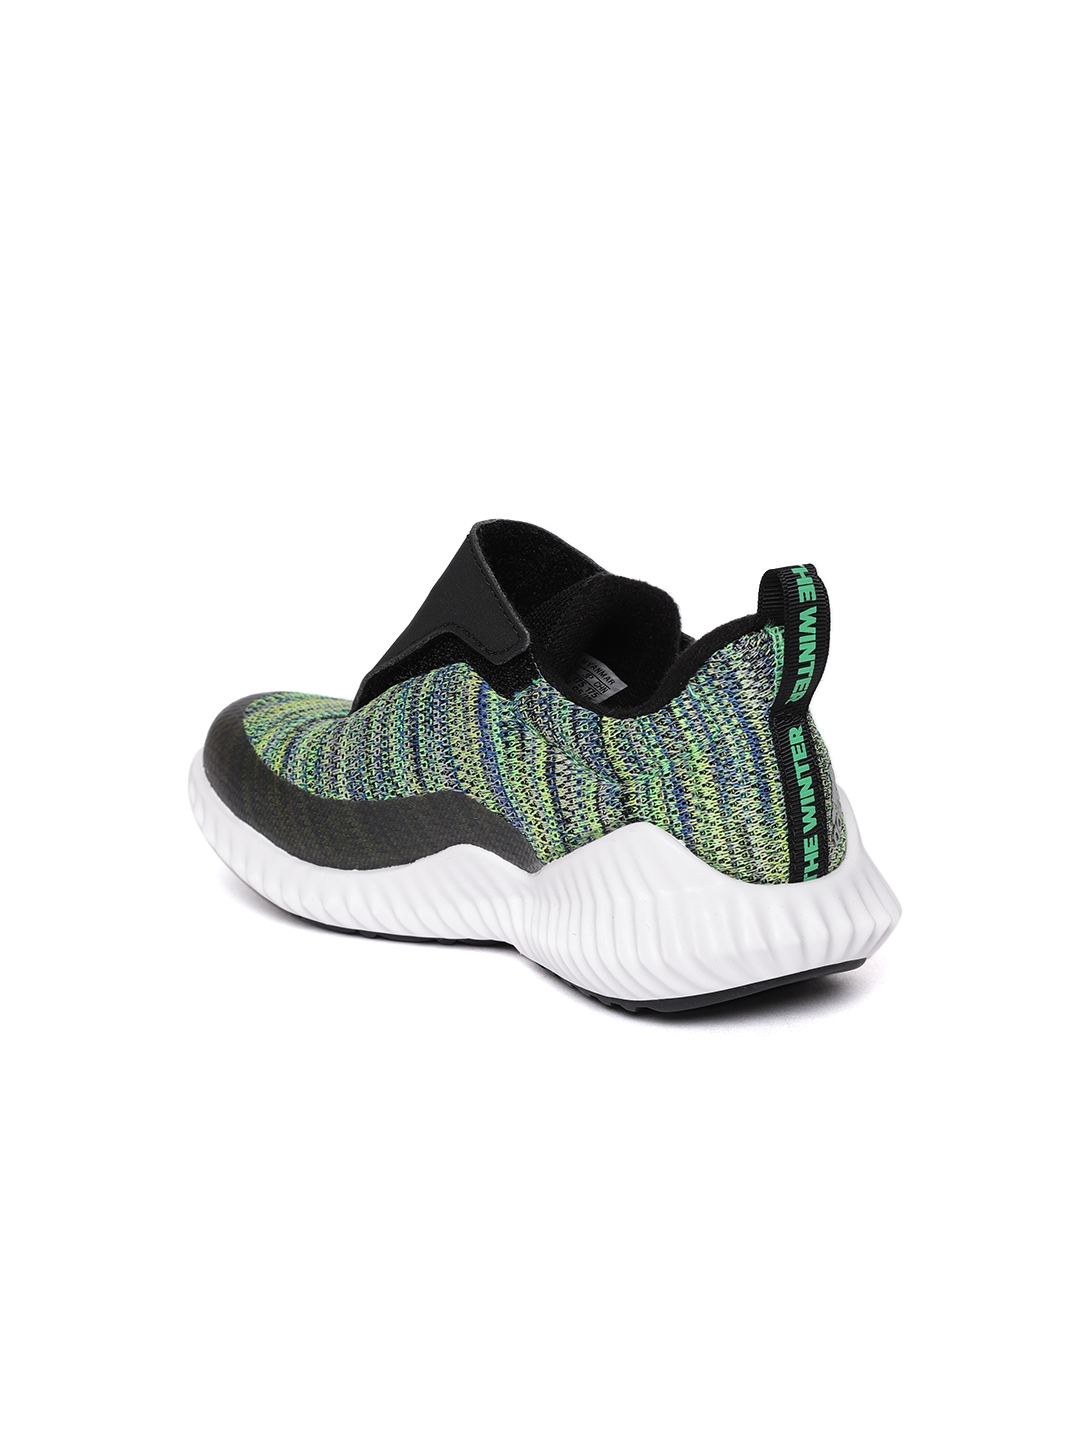 8f7390ee7ea Buy ADIDAS Kids Green FORTARUN BTW AC Running Shoes - Sports Shoes ...